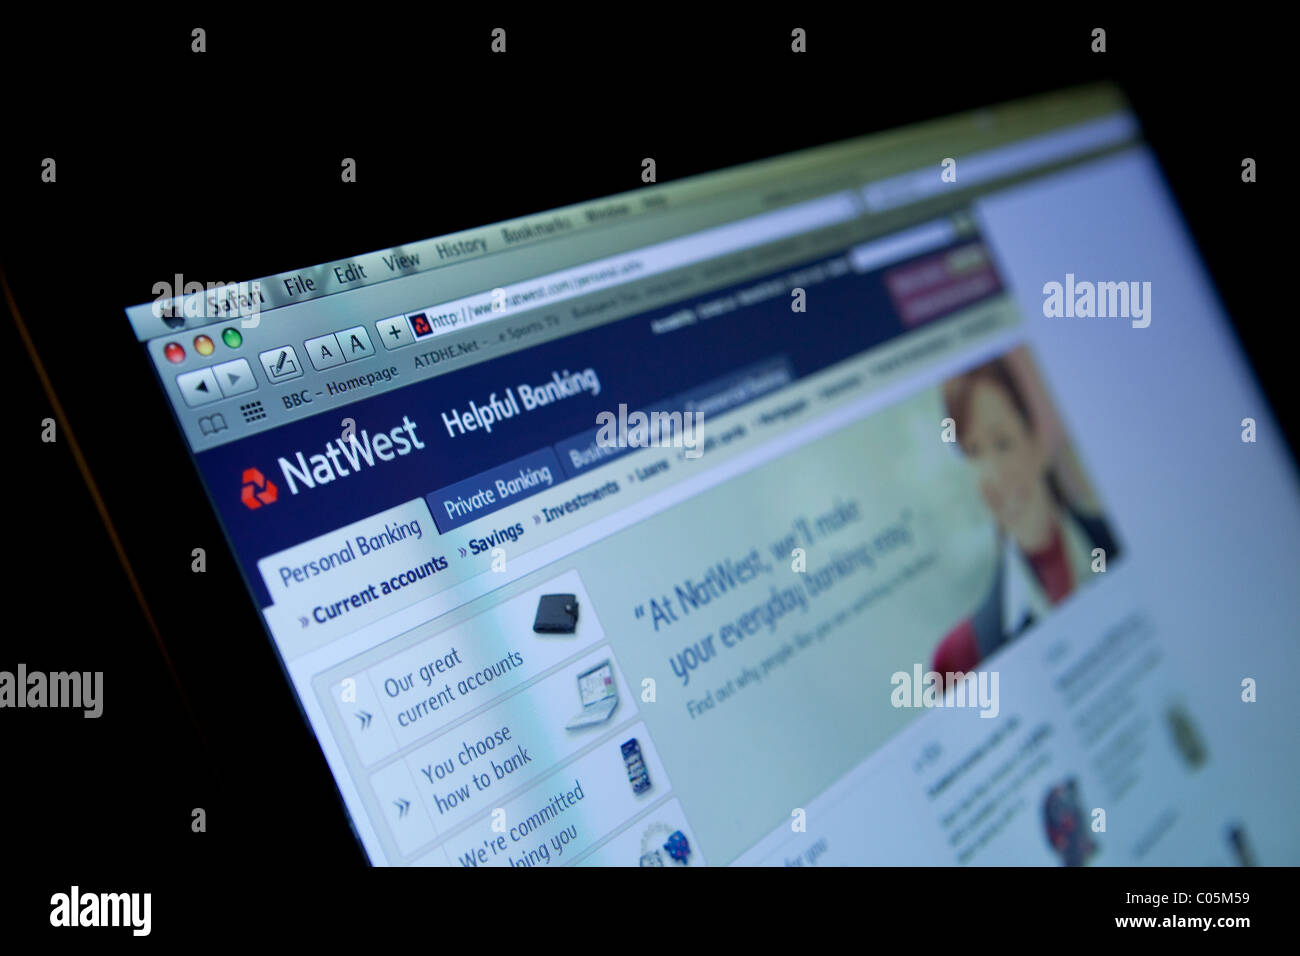 NatWest on-line banking home page - Stock Image